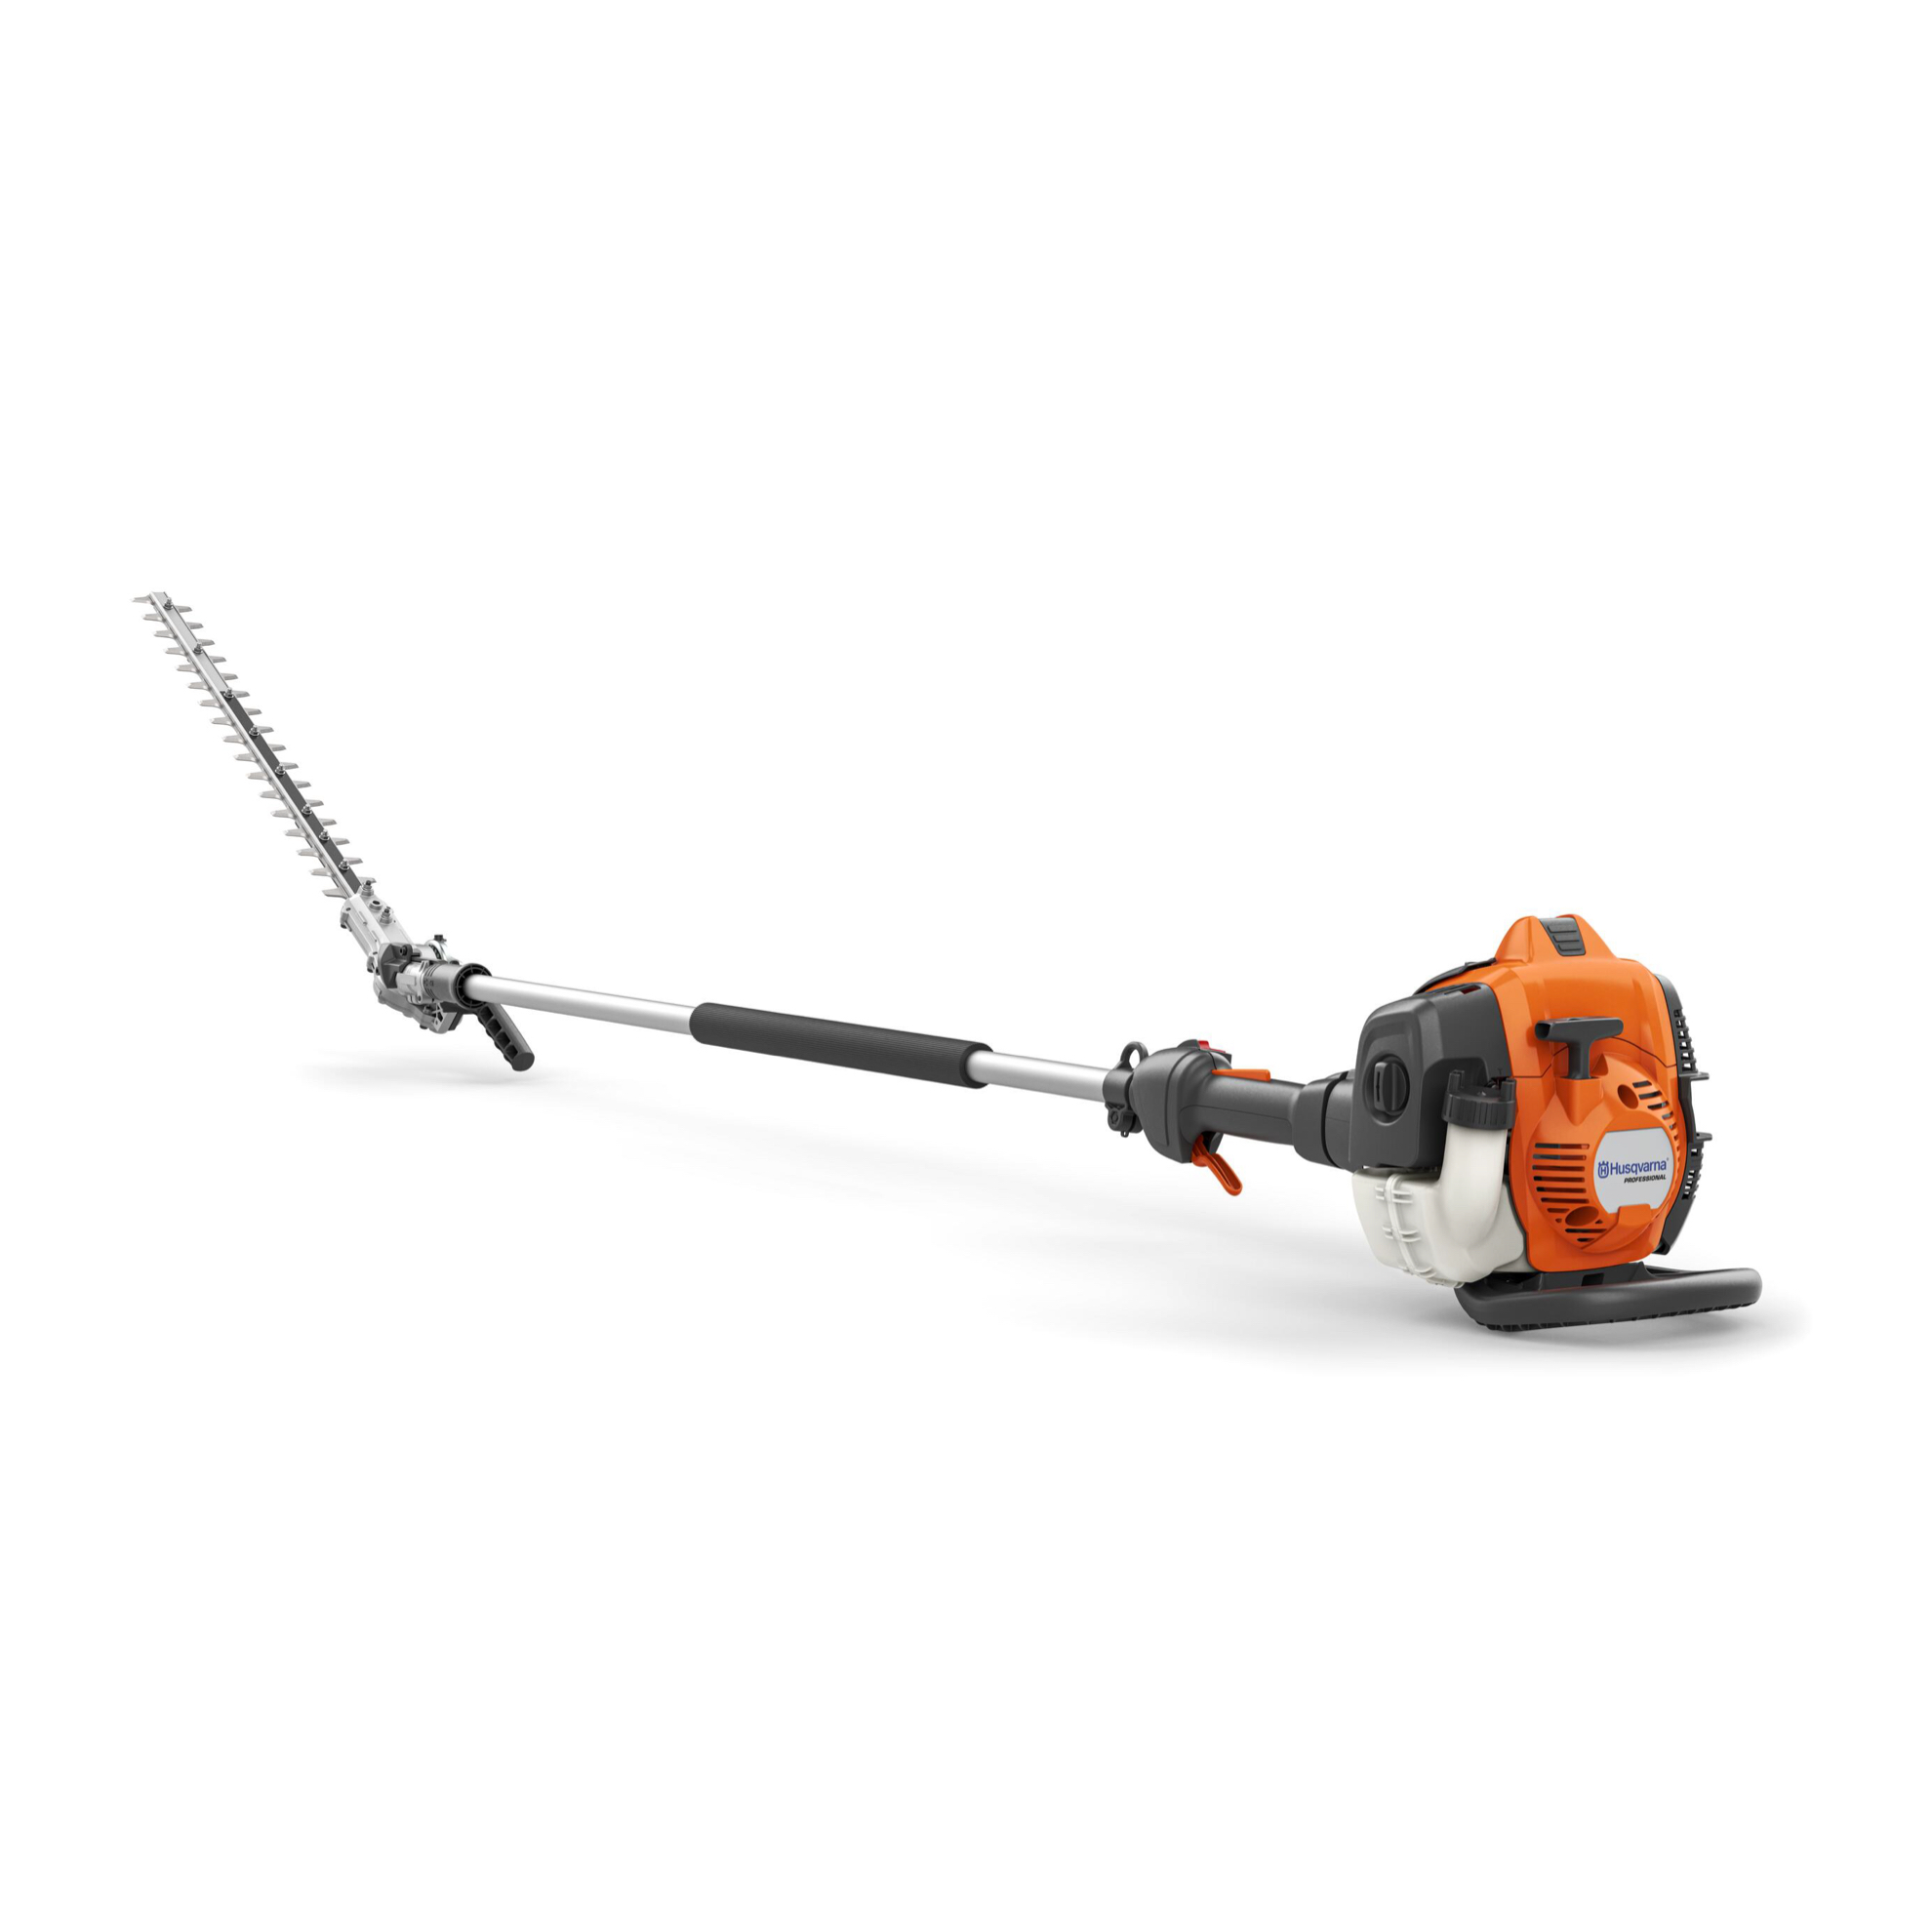 Husqvarna 525HE4 Petrol-powered Hedge Trimmer